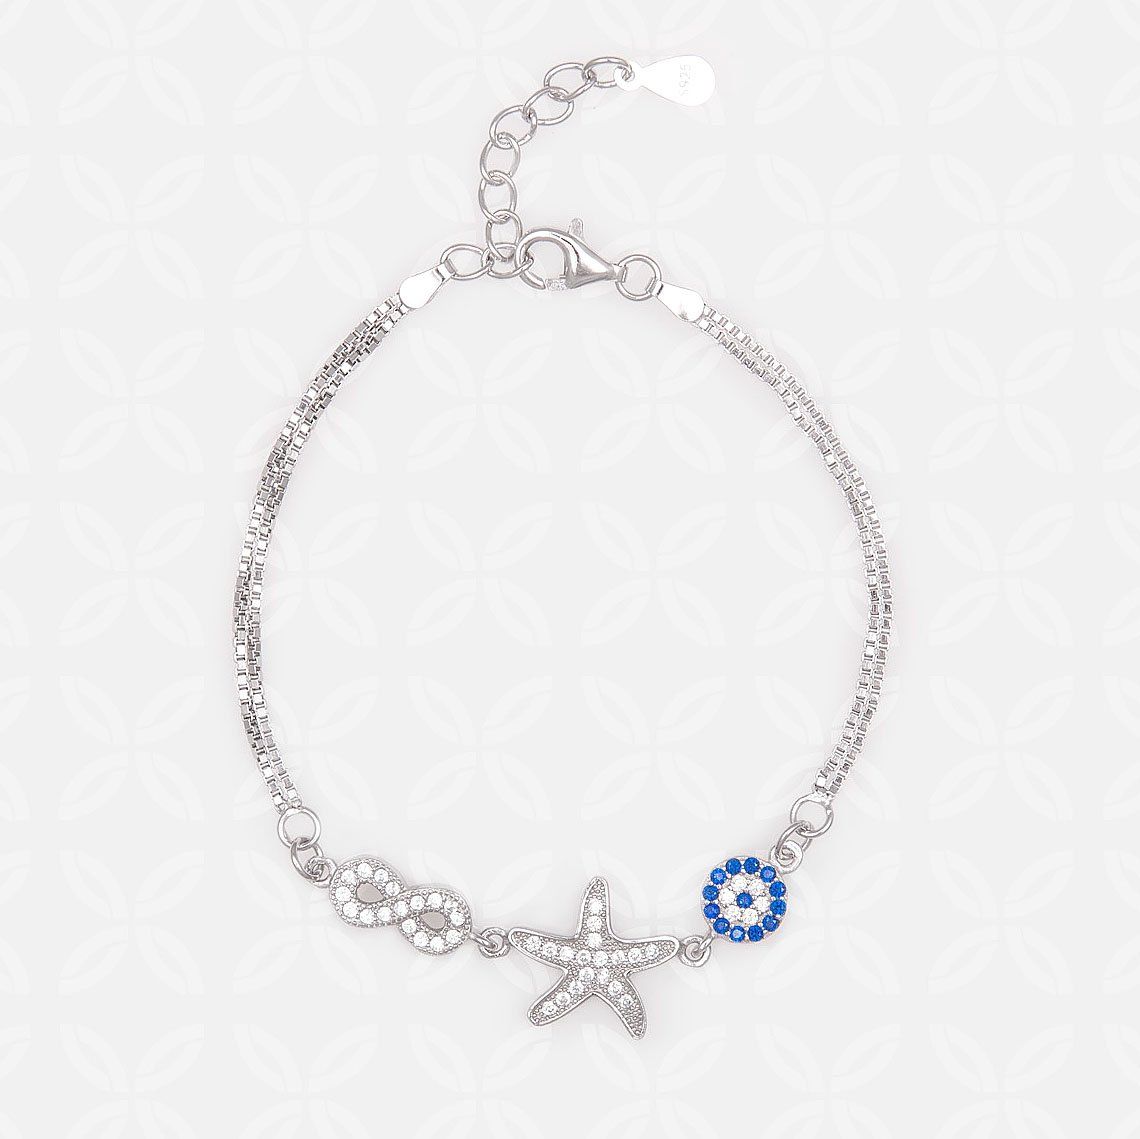 Magnificent Star Silver Bracelet